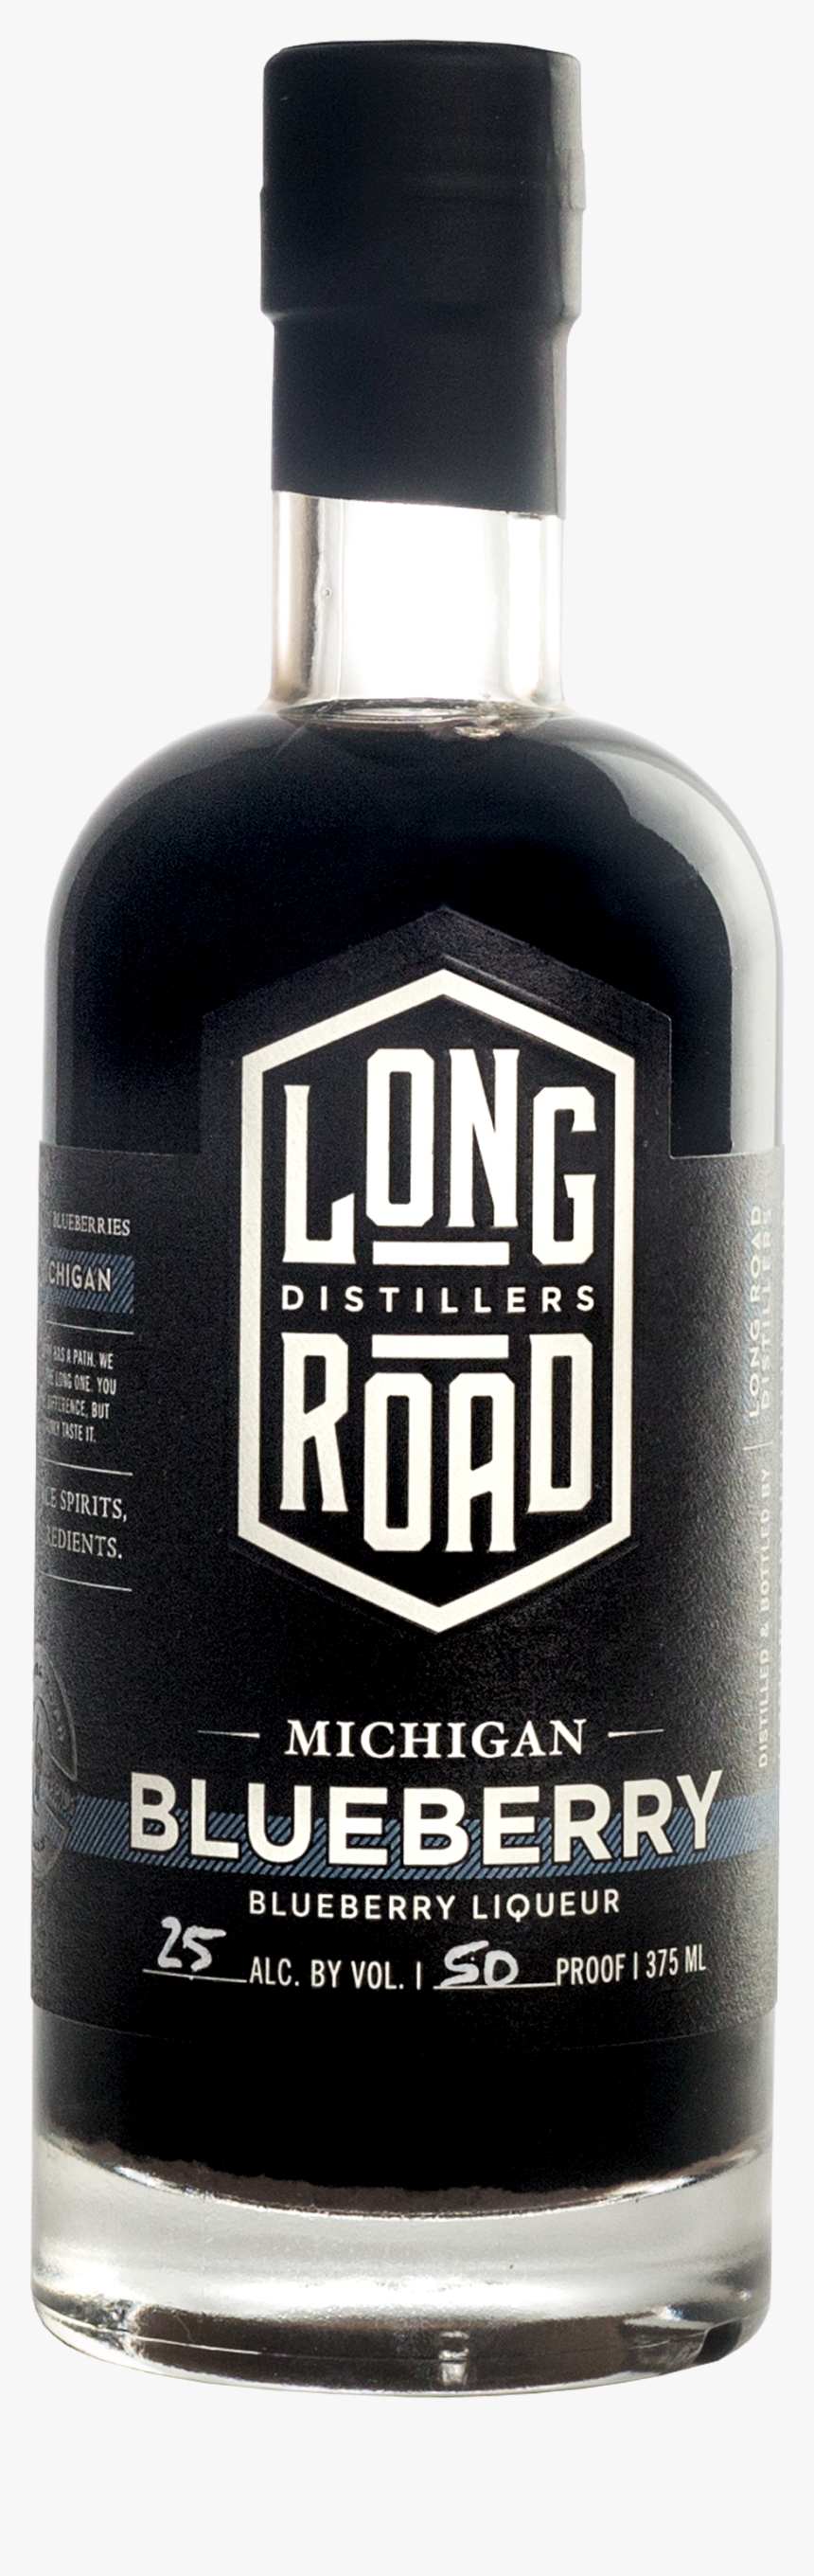 Michigan Blueberry Long Road Distillers - Bottle, HD Png Download, Free Download